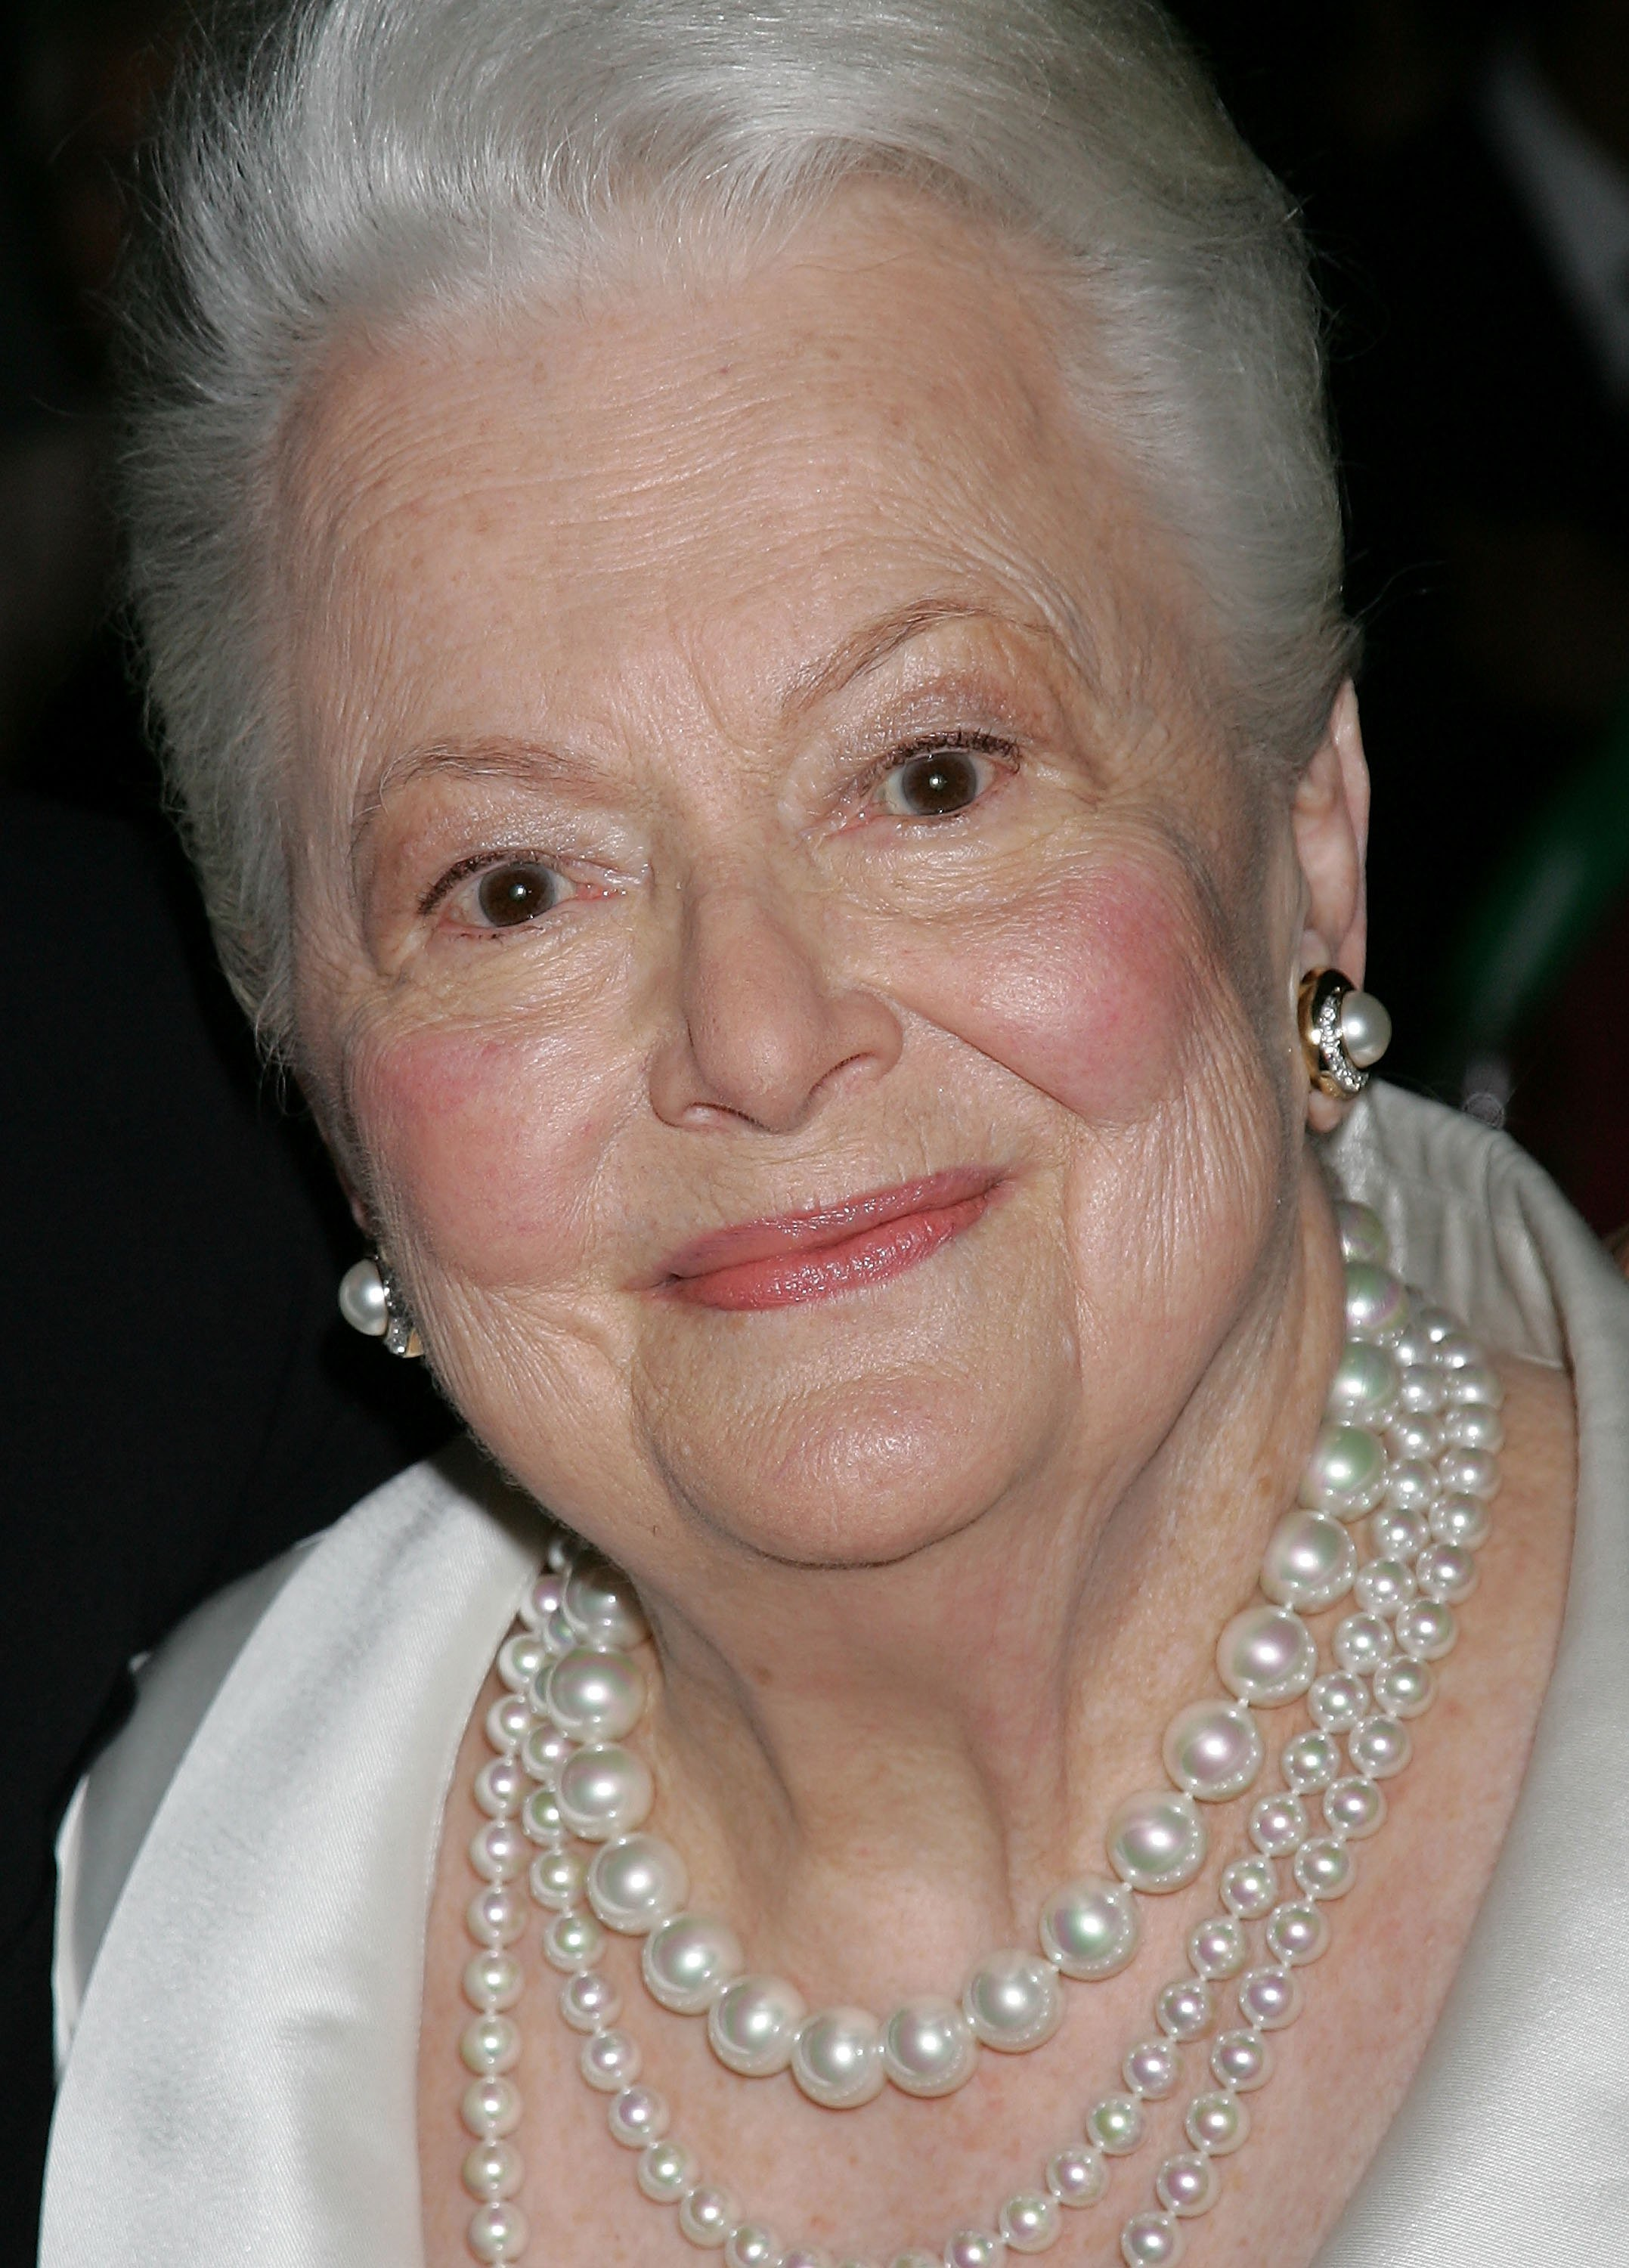 Actress Olivia de Havilland at the Academy of Motion Picture Arts and Sciences' tribute to Ms. de Havilland at the Academy of Motion Picture Arts and Sciences in Beverly Hills, California | Photo: David Livingston/Getty Images